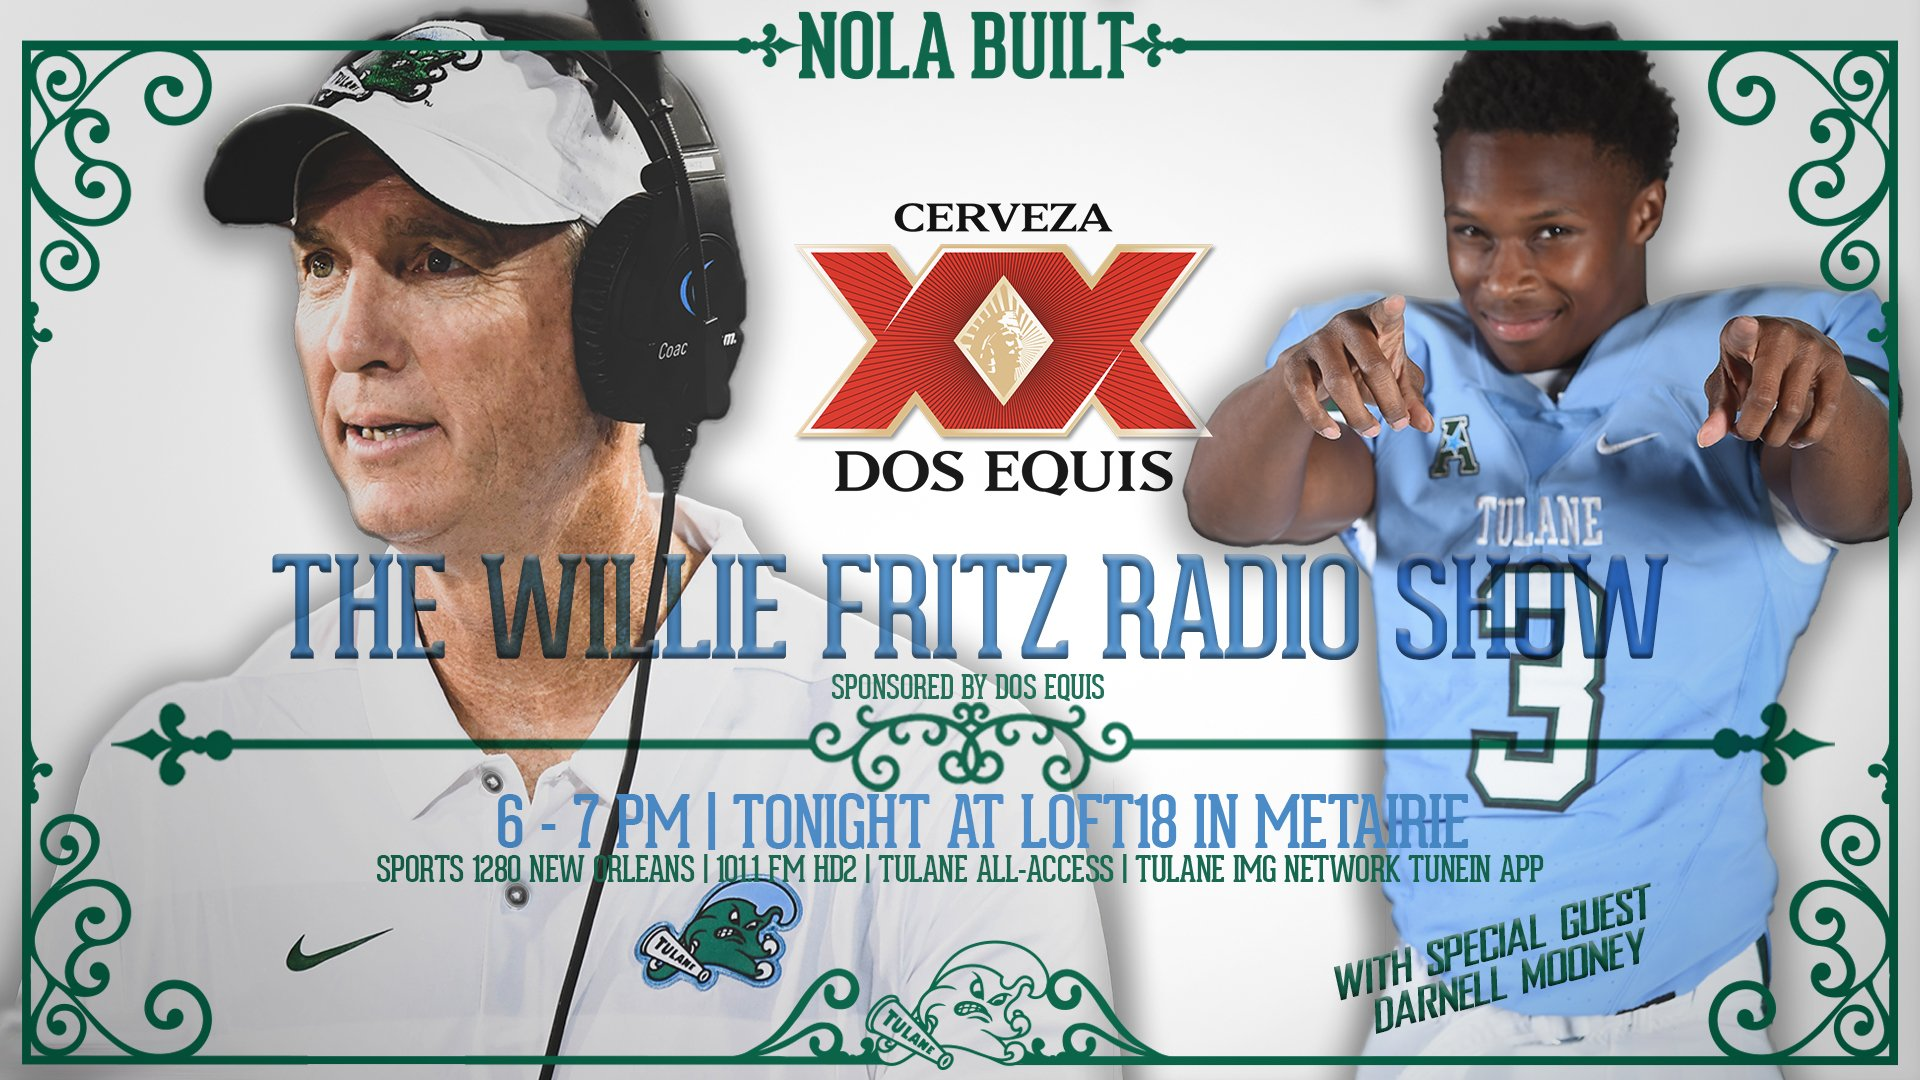 The Willie Fritz Radio Show Airs Tonight at Loft 18 - Tulane